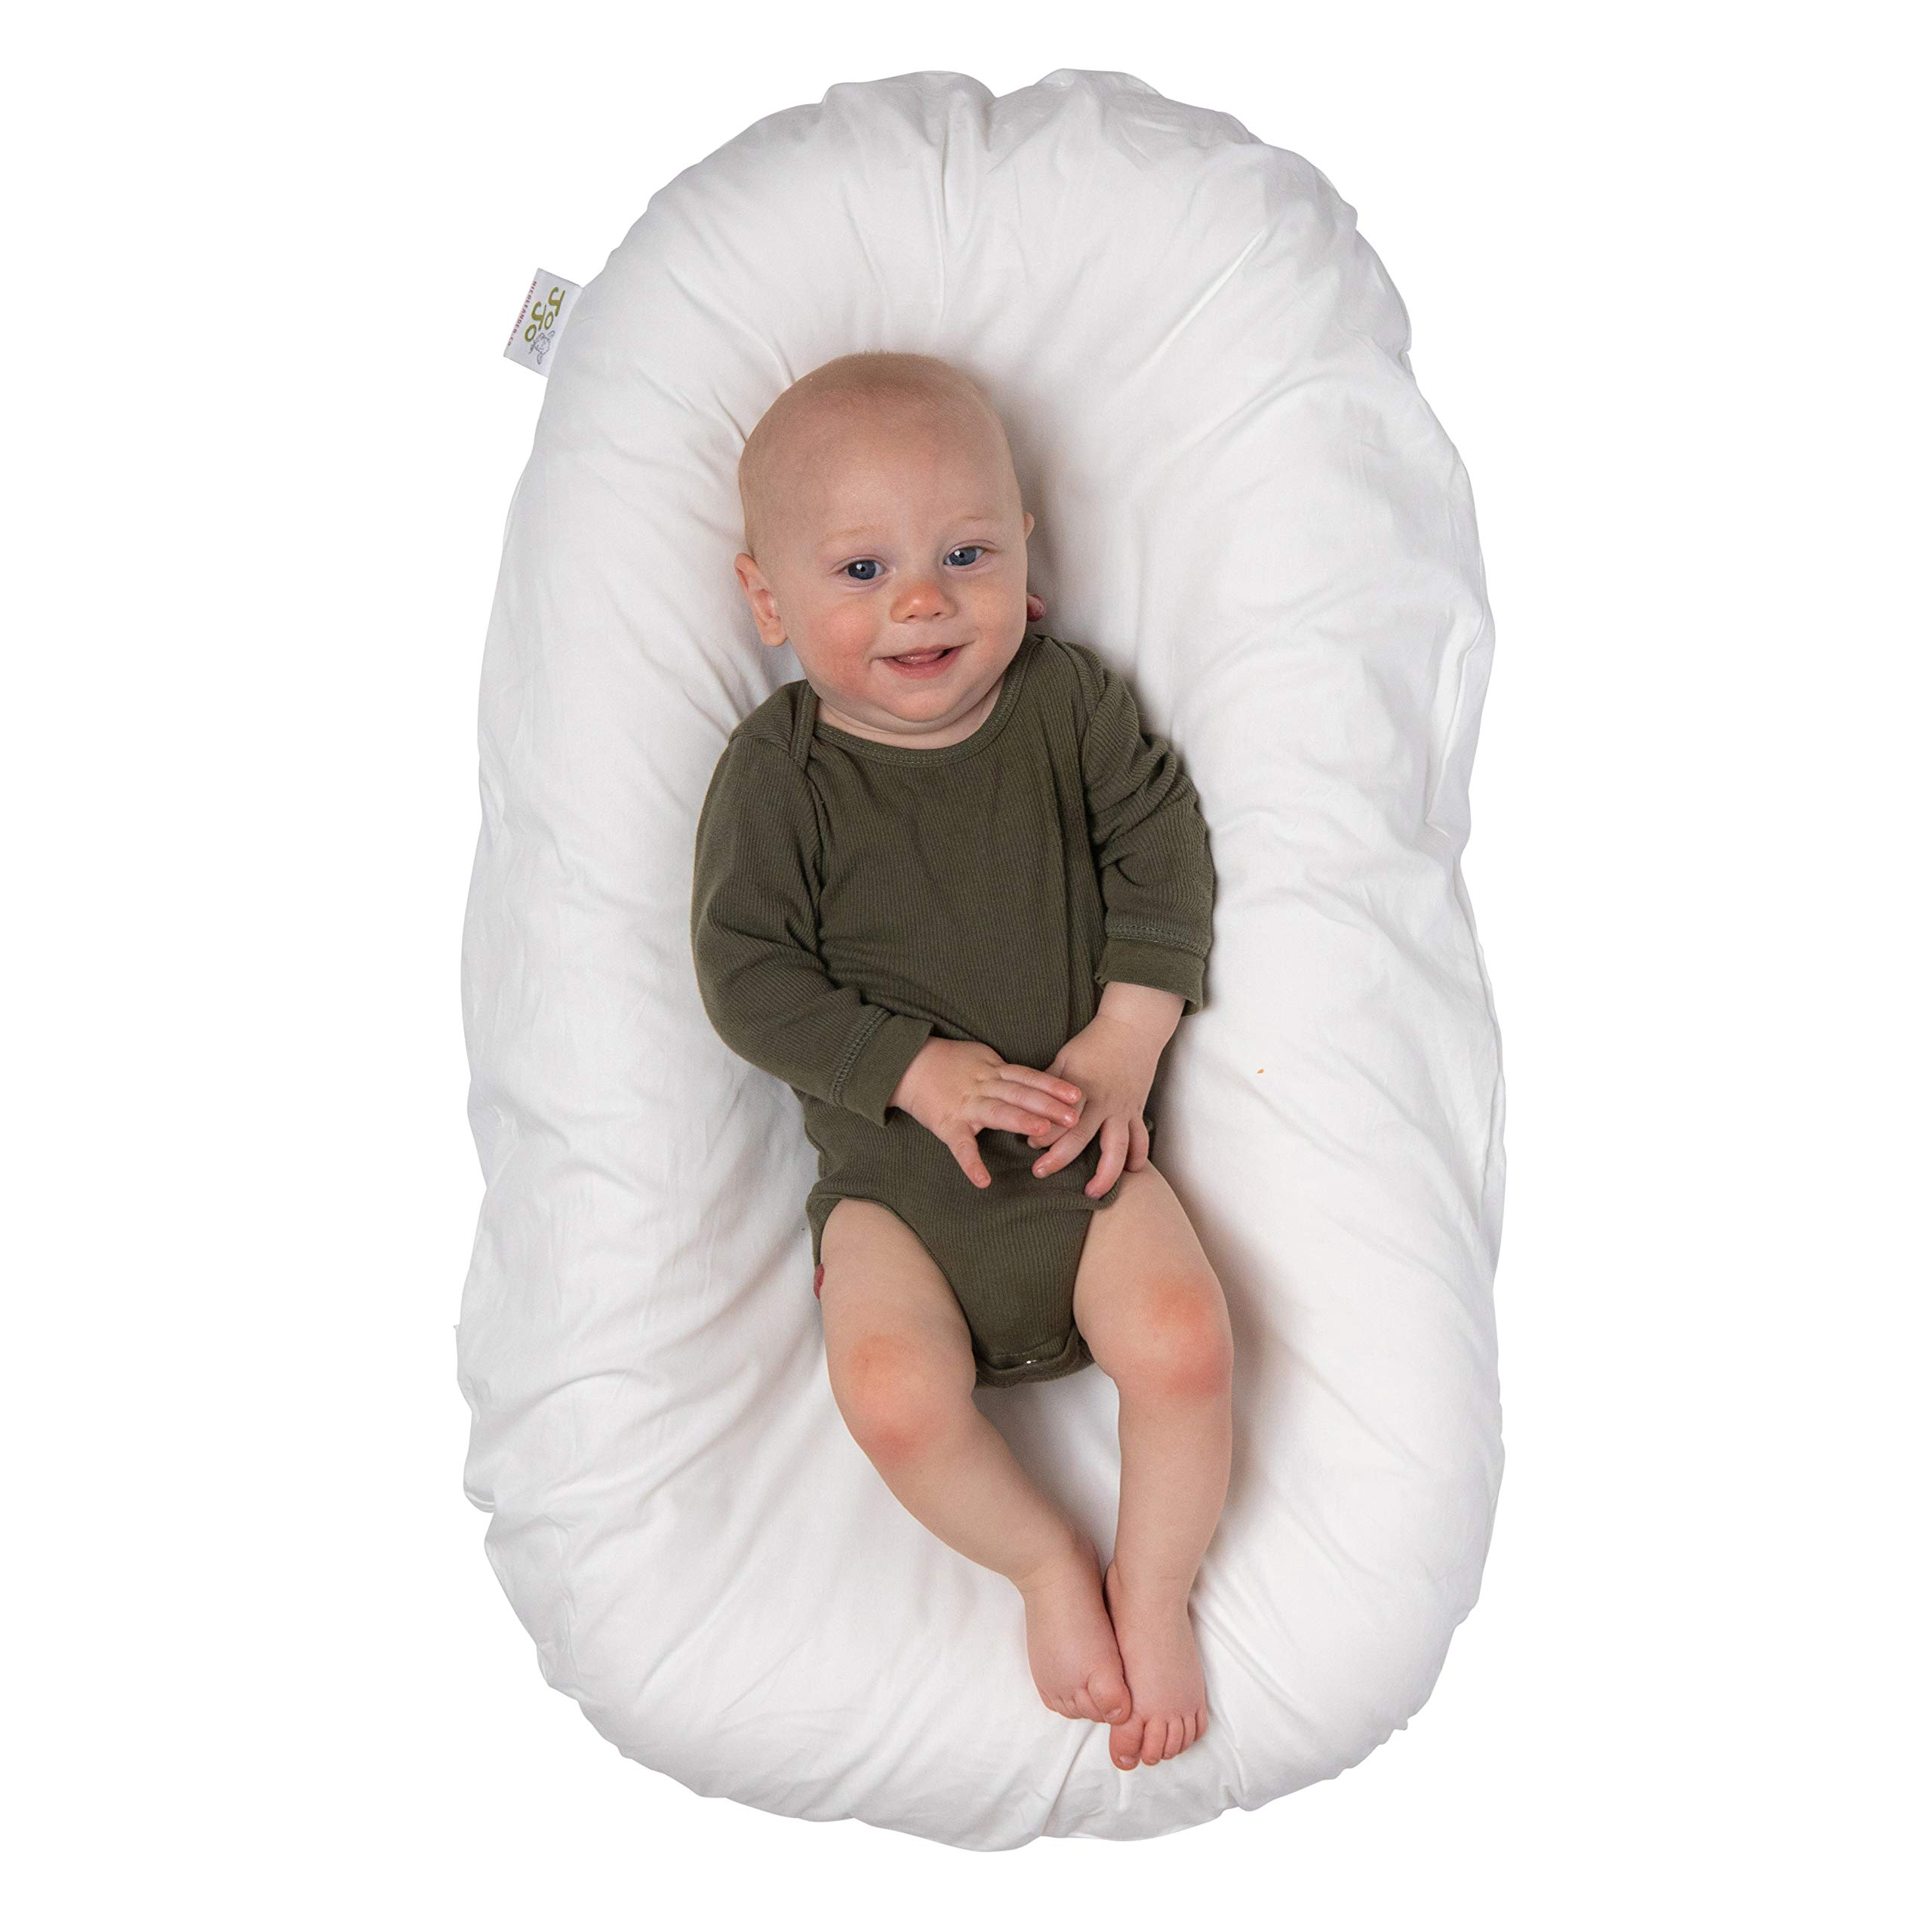 JoJo Infant and Toddler Lounger | cosleeping Baby Bed | Portable Crib and Newborn Sleeper | Suitable for 0-24 Months by The Mompreneur, LLC